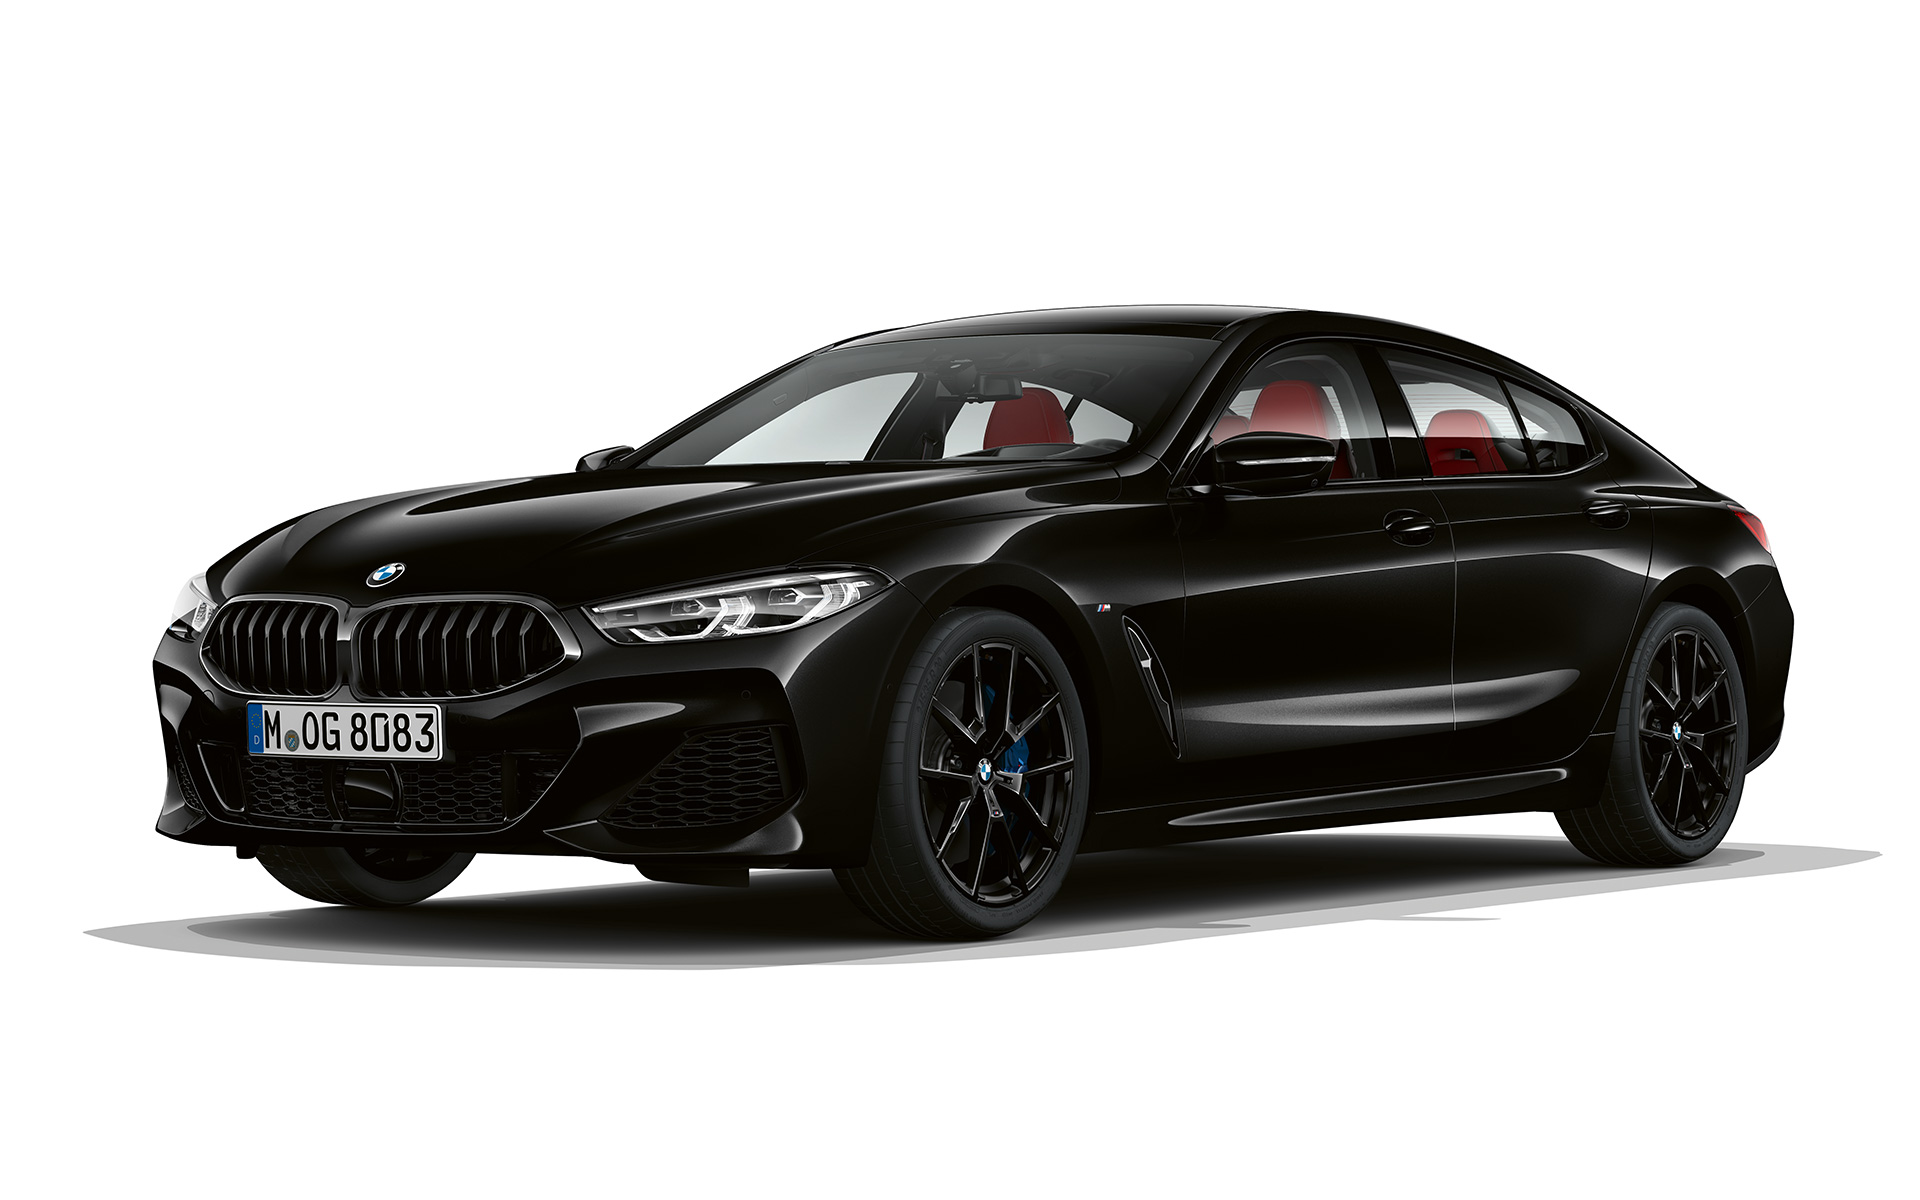 BMW Serie 8 Gran Coupé, Dark Seduction, vista anteriore a tre quarti